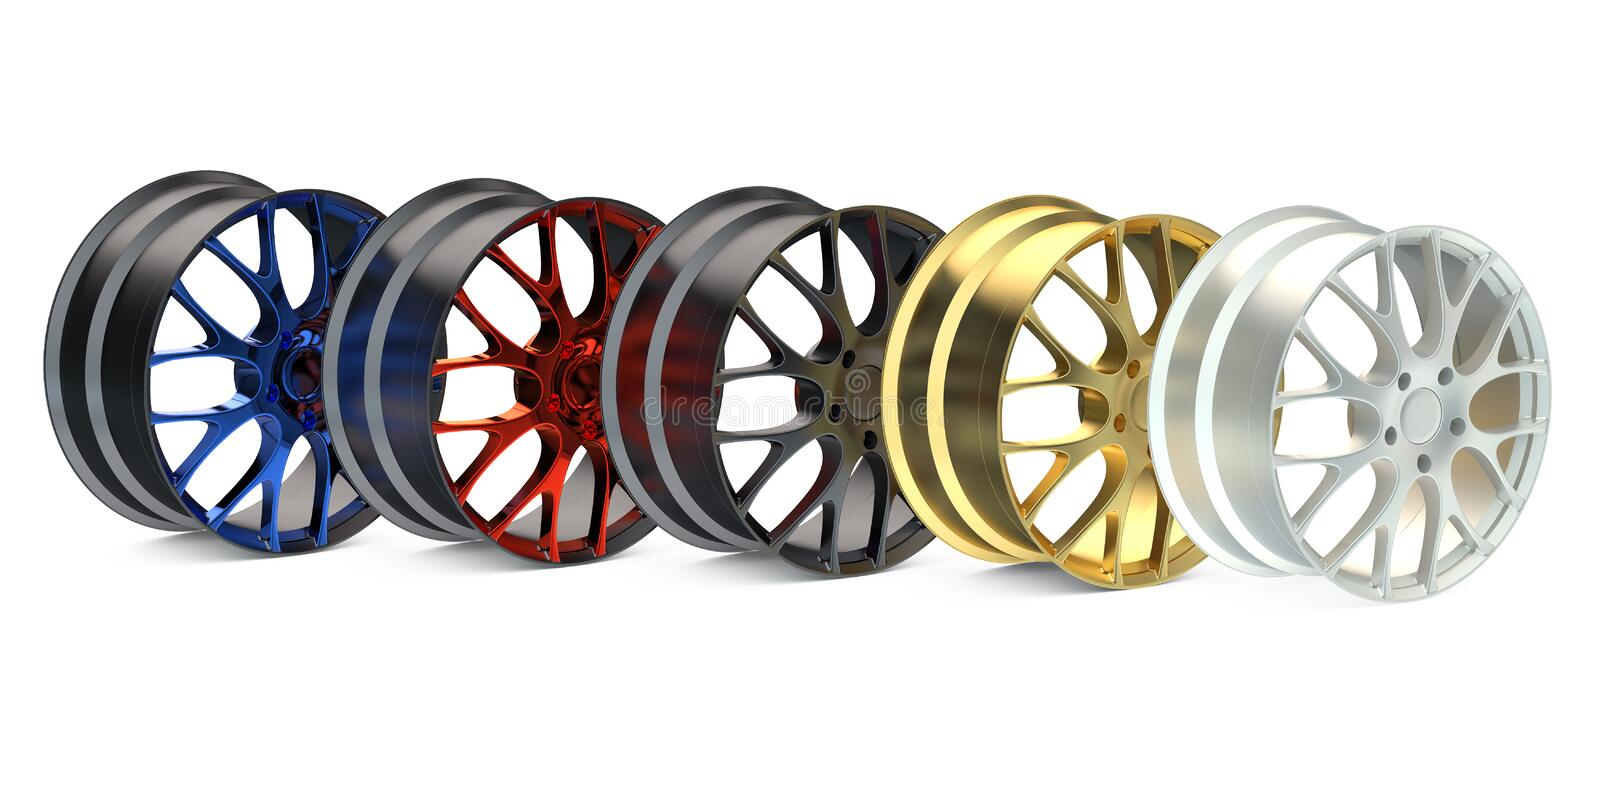 Row from colored car rims. Isolated on white background royalty free illustration